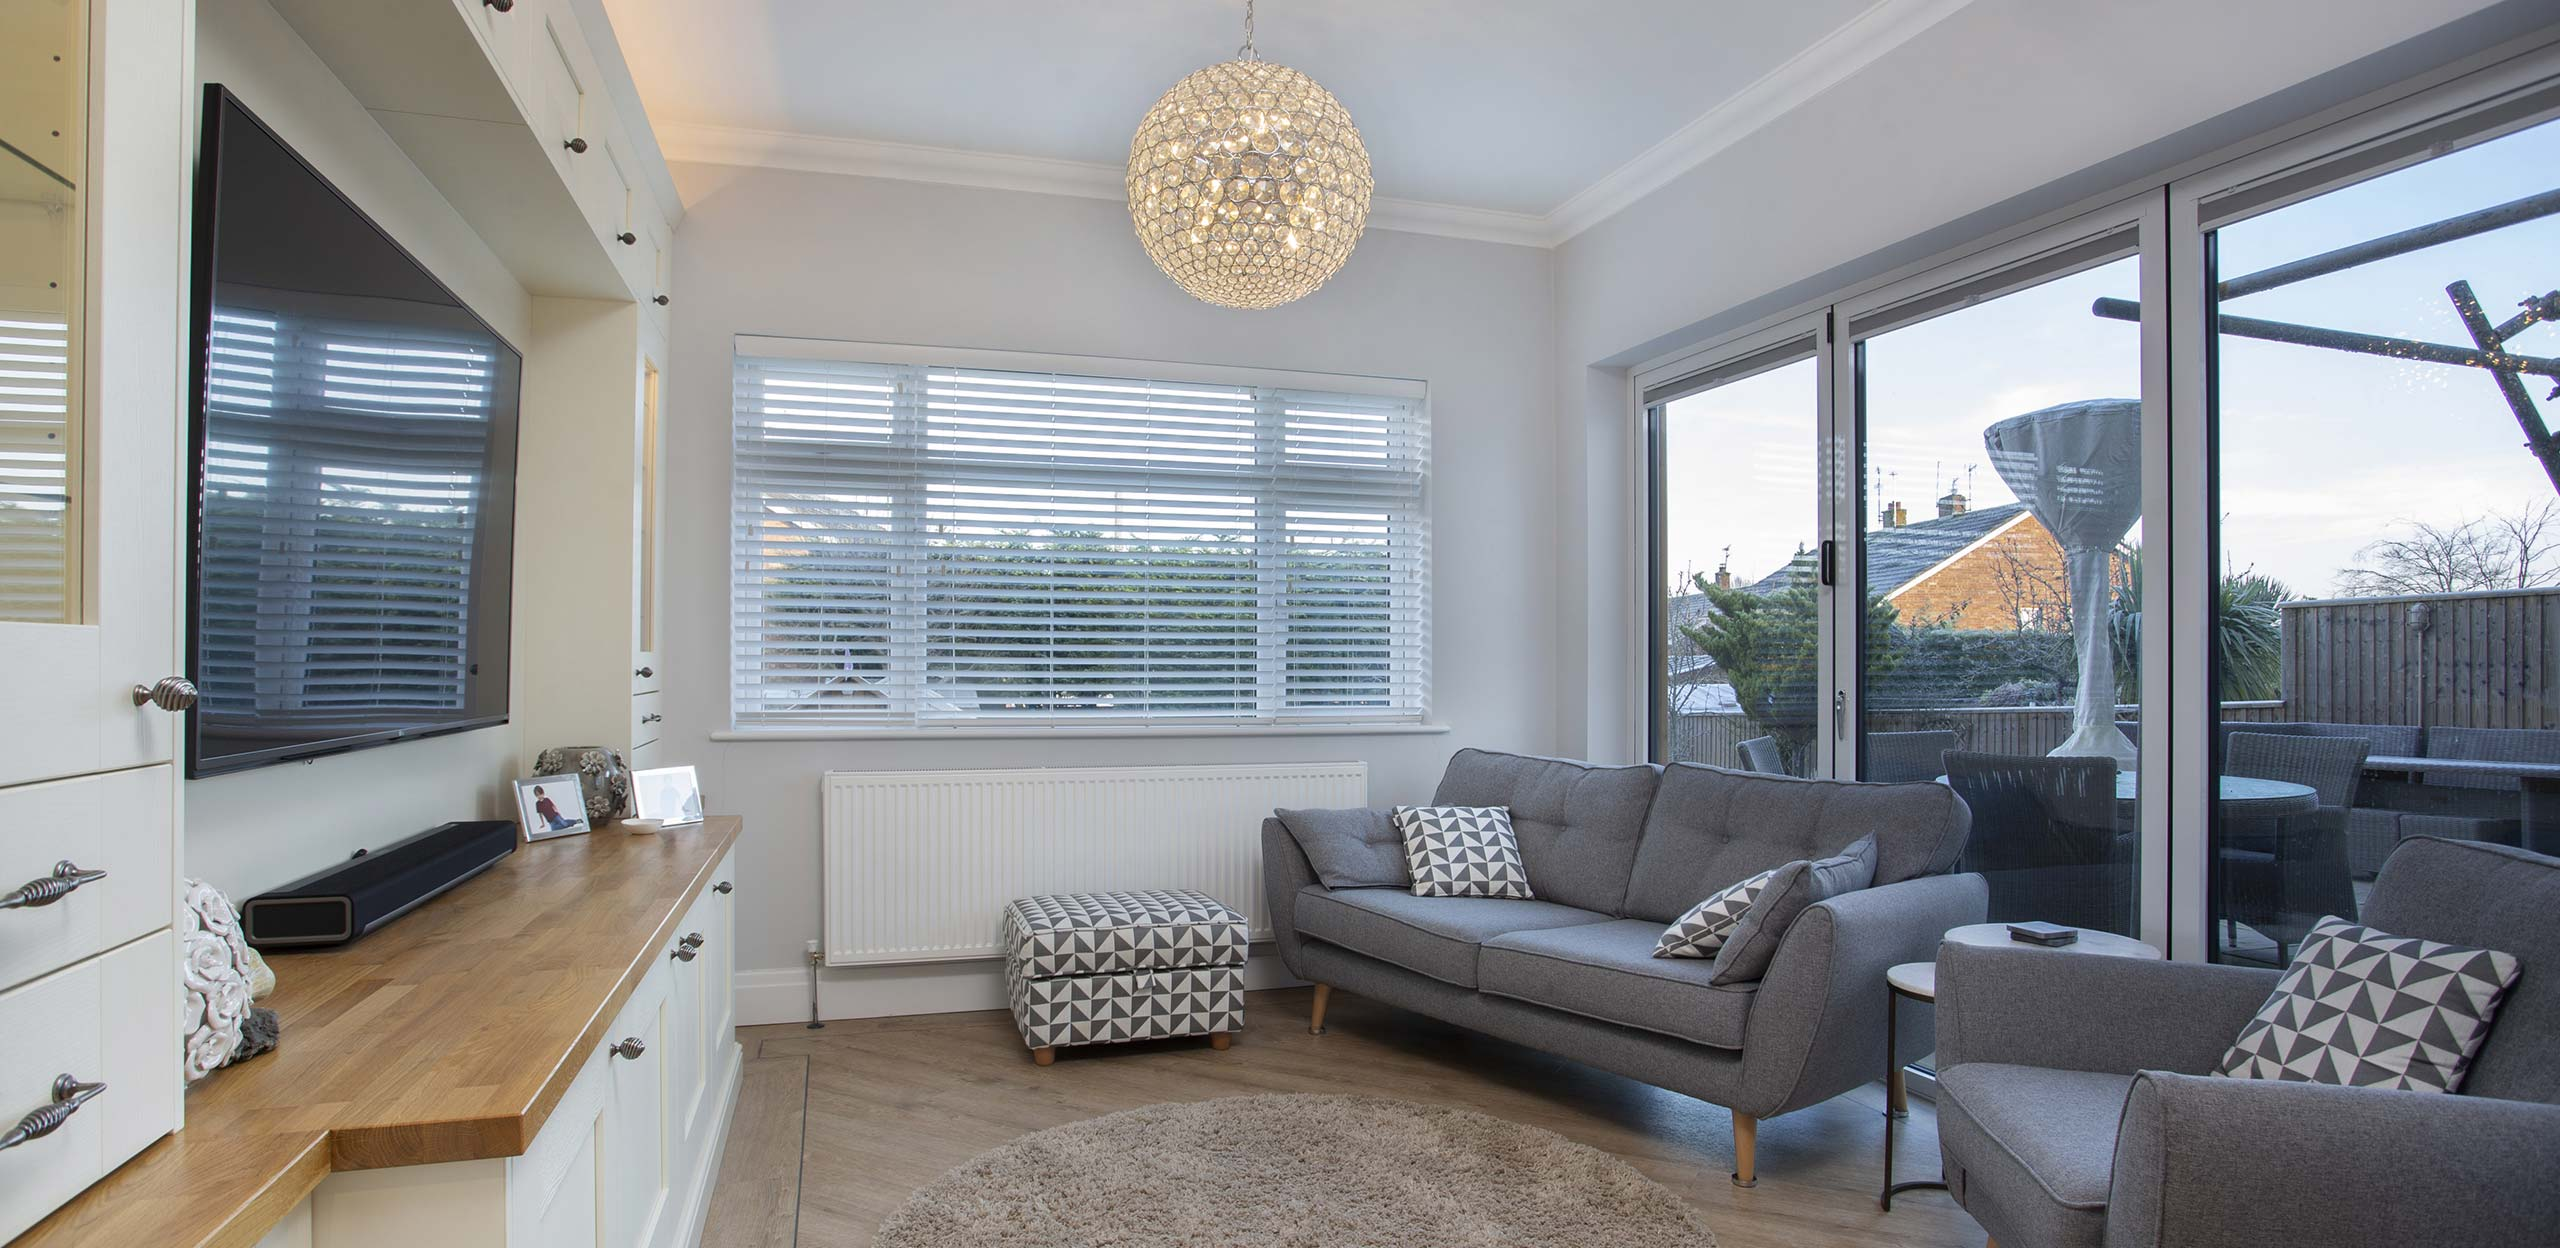 KIS Property Services in Bristol